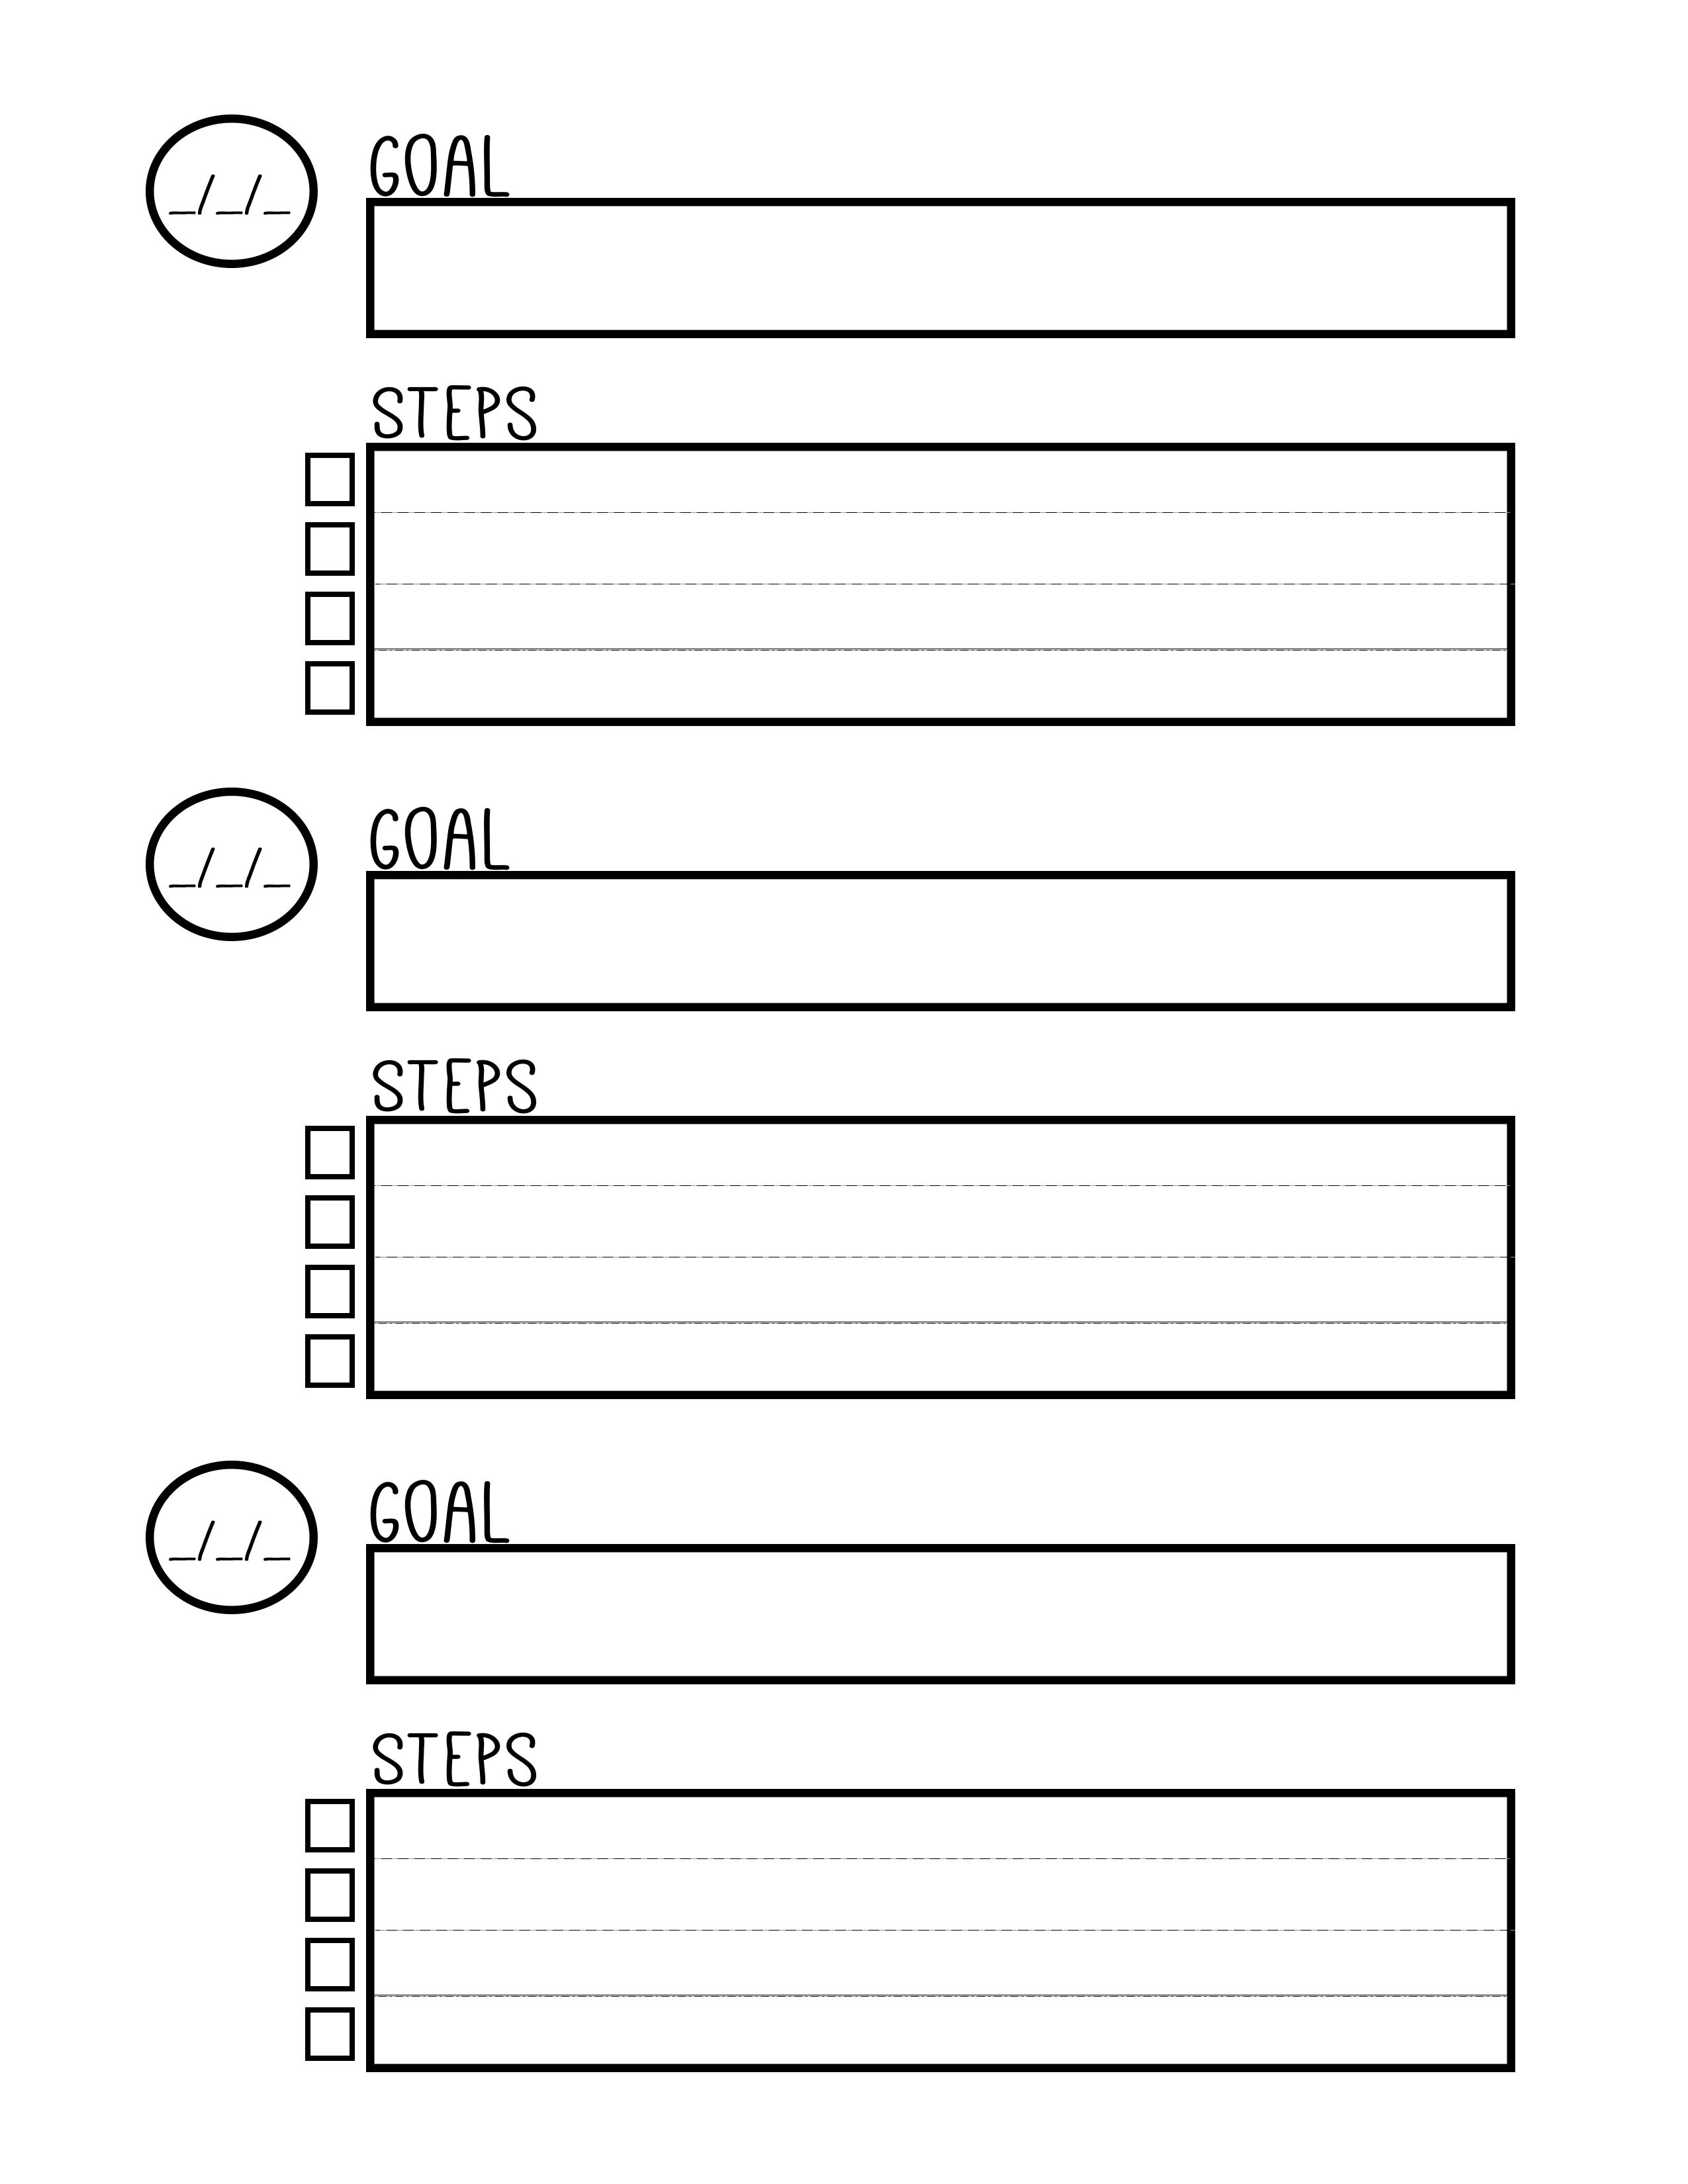 Free Printable Goal Setting Worksheet - Planner … | Education | Printable Goal Setting Worksheet For High School Students